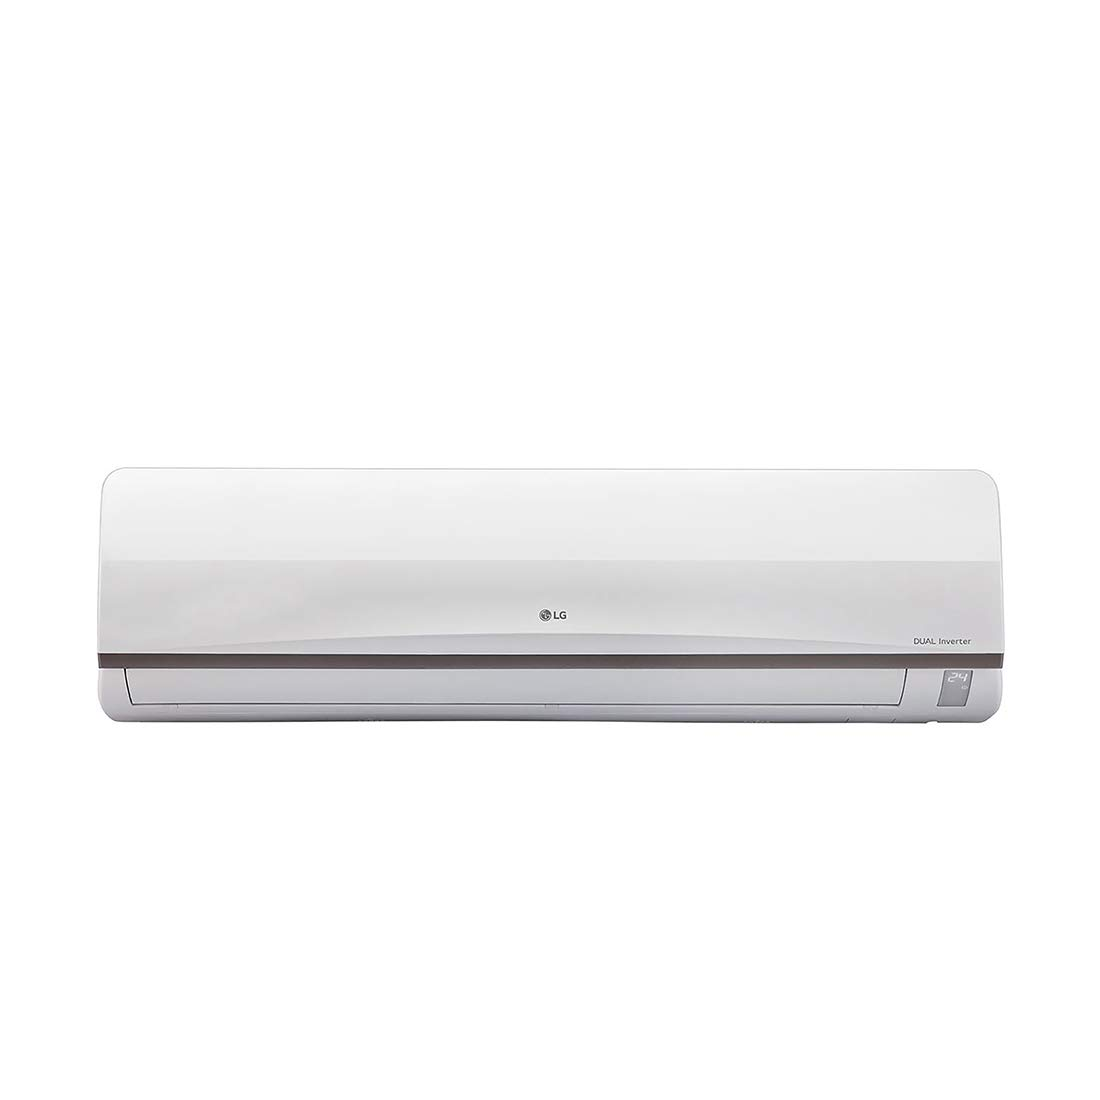 LG 1.5 Ton 3 Star Inverter Split AC (Copper, JS-Q18CPXD2, White)